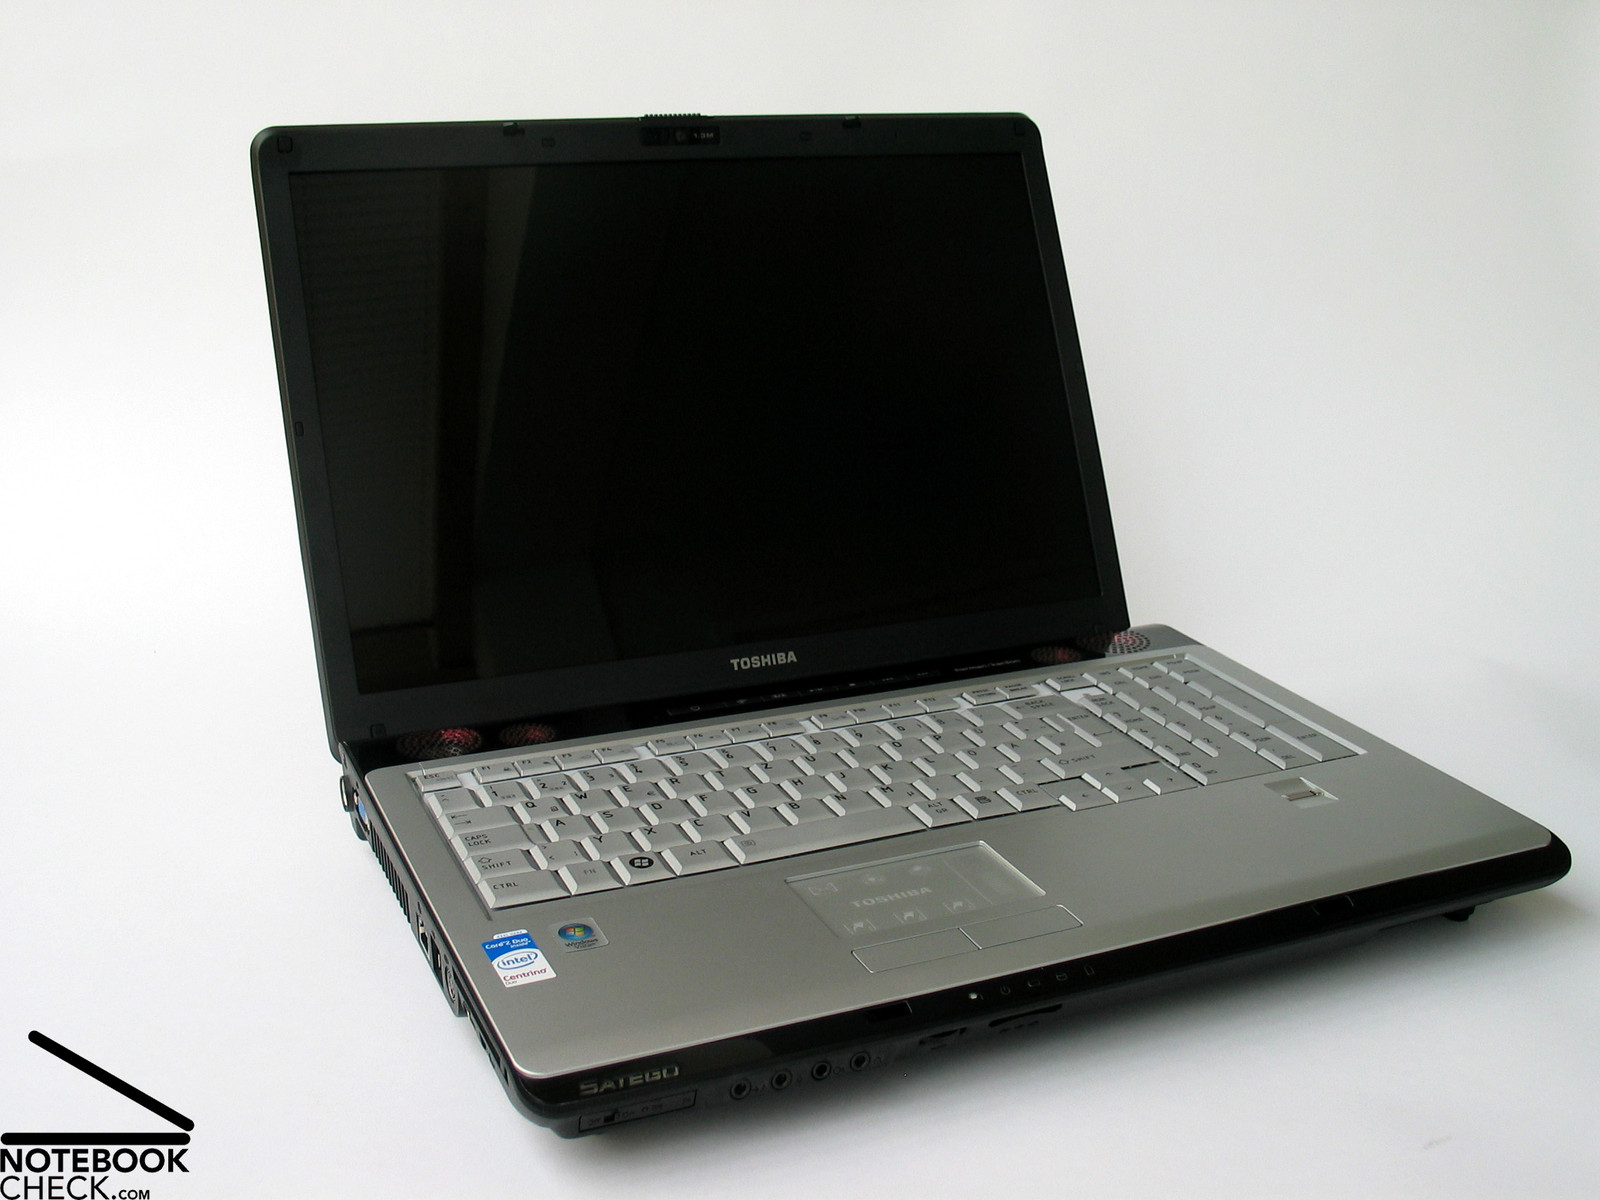 Toshiba Satellite X200 Samsung TS-L632 Treiber Windows 10